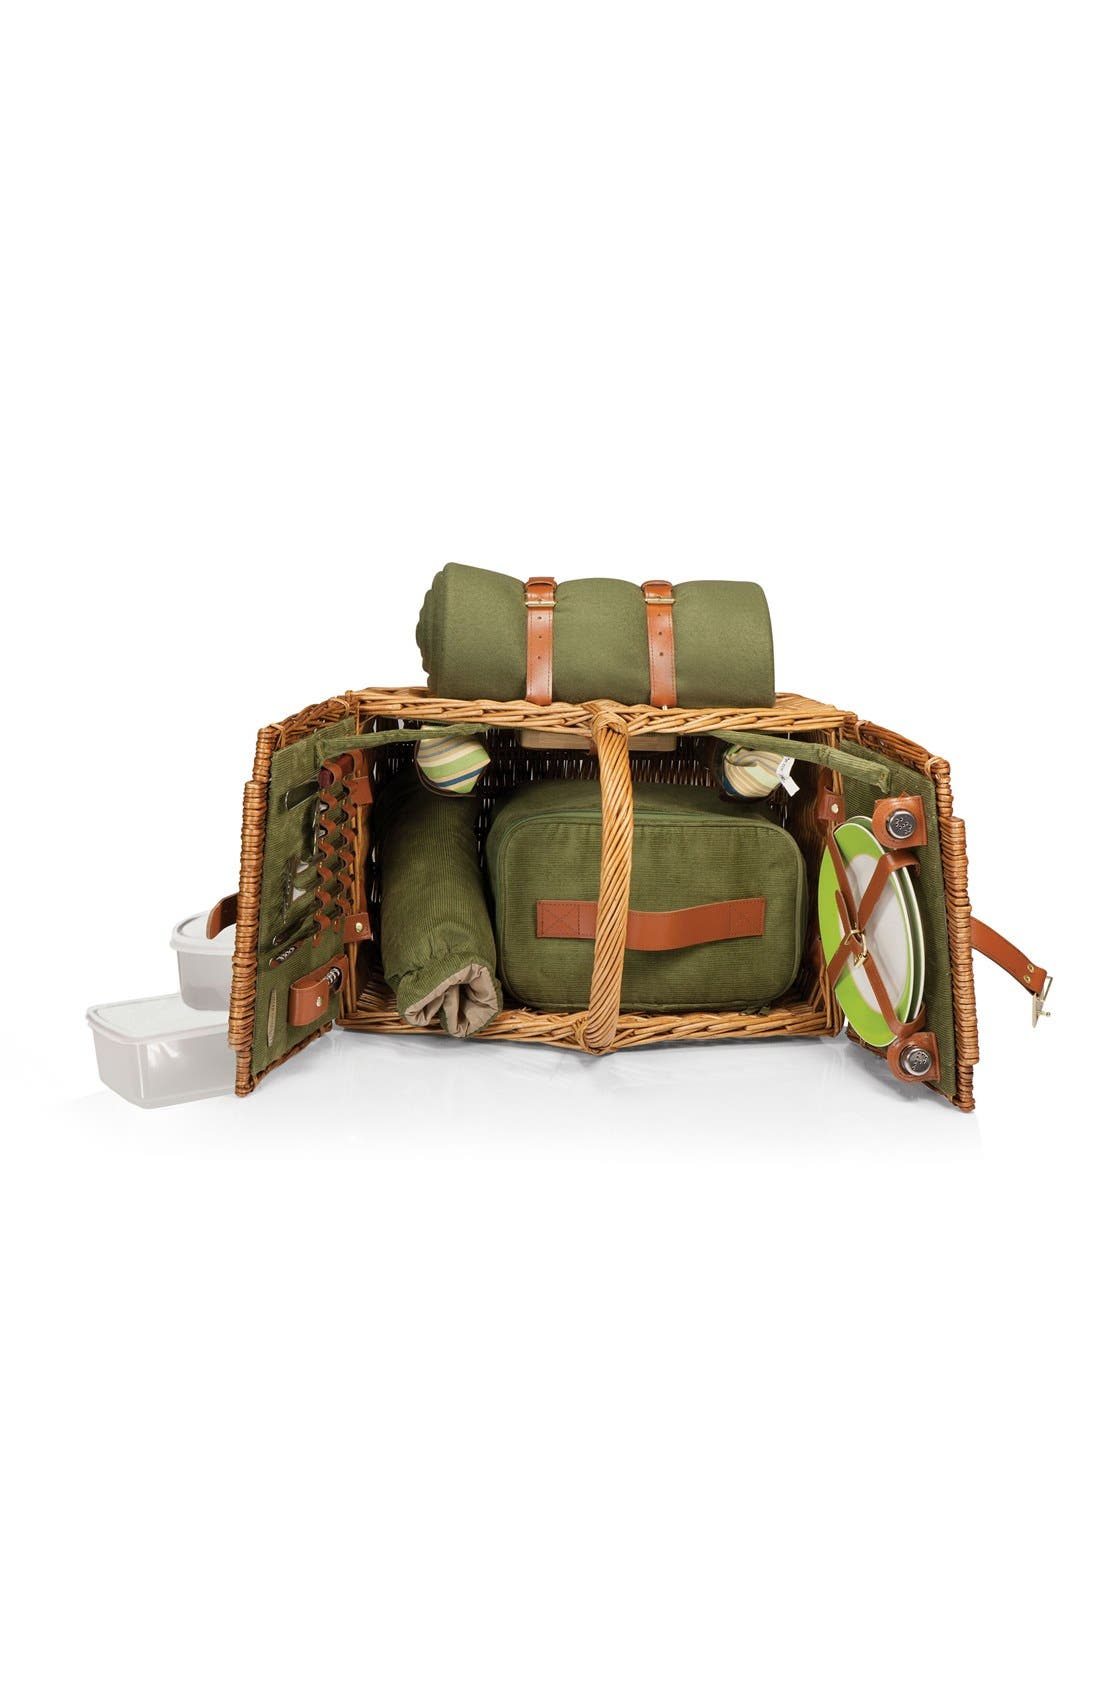 'Somerset' Wicker Picnic Basket,                             Alternate thumbnail 7, color,                             Green